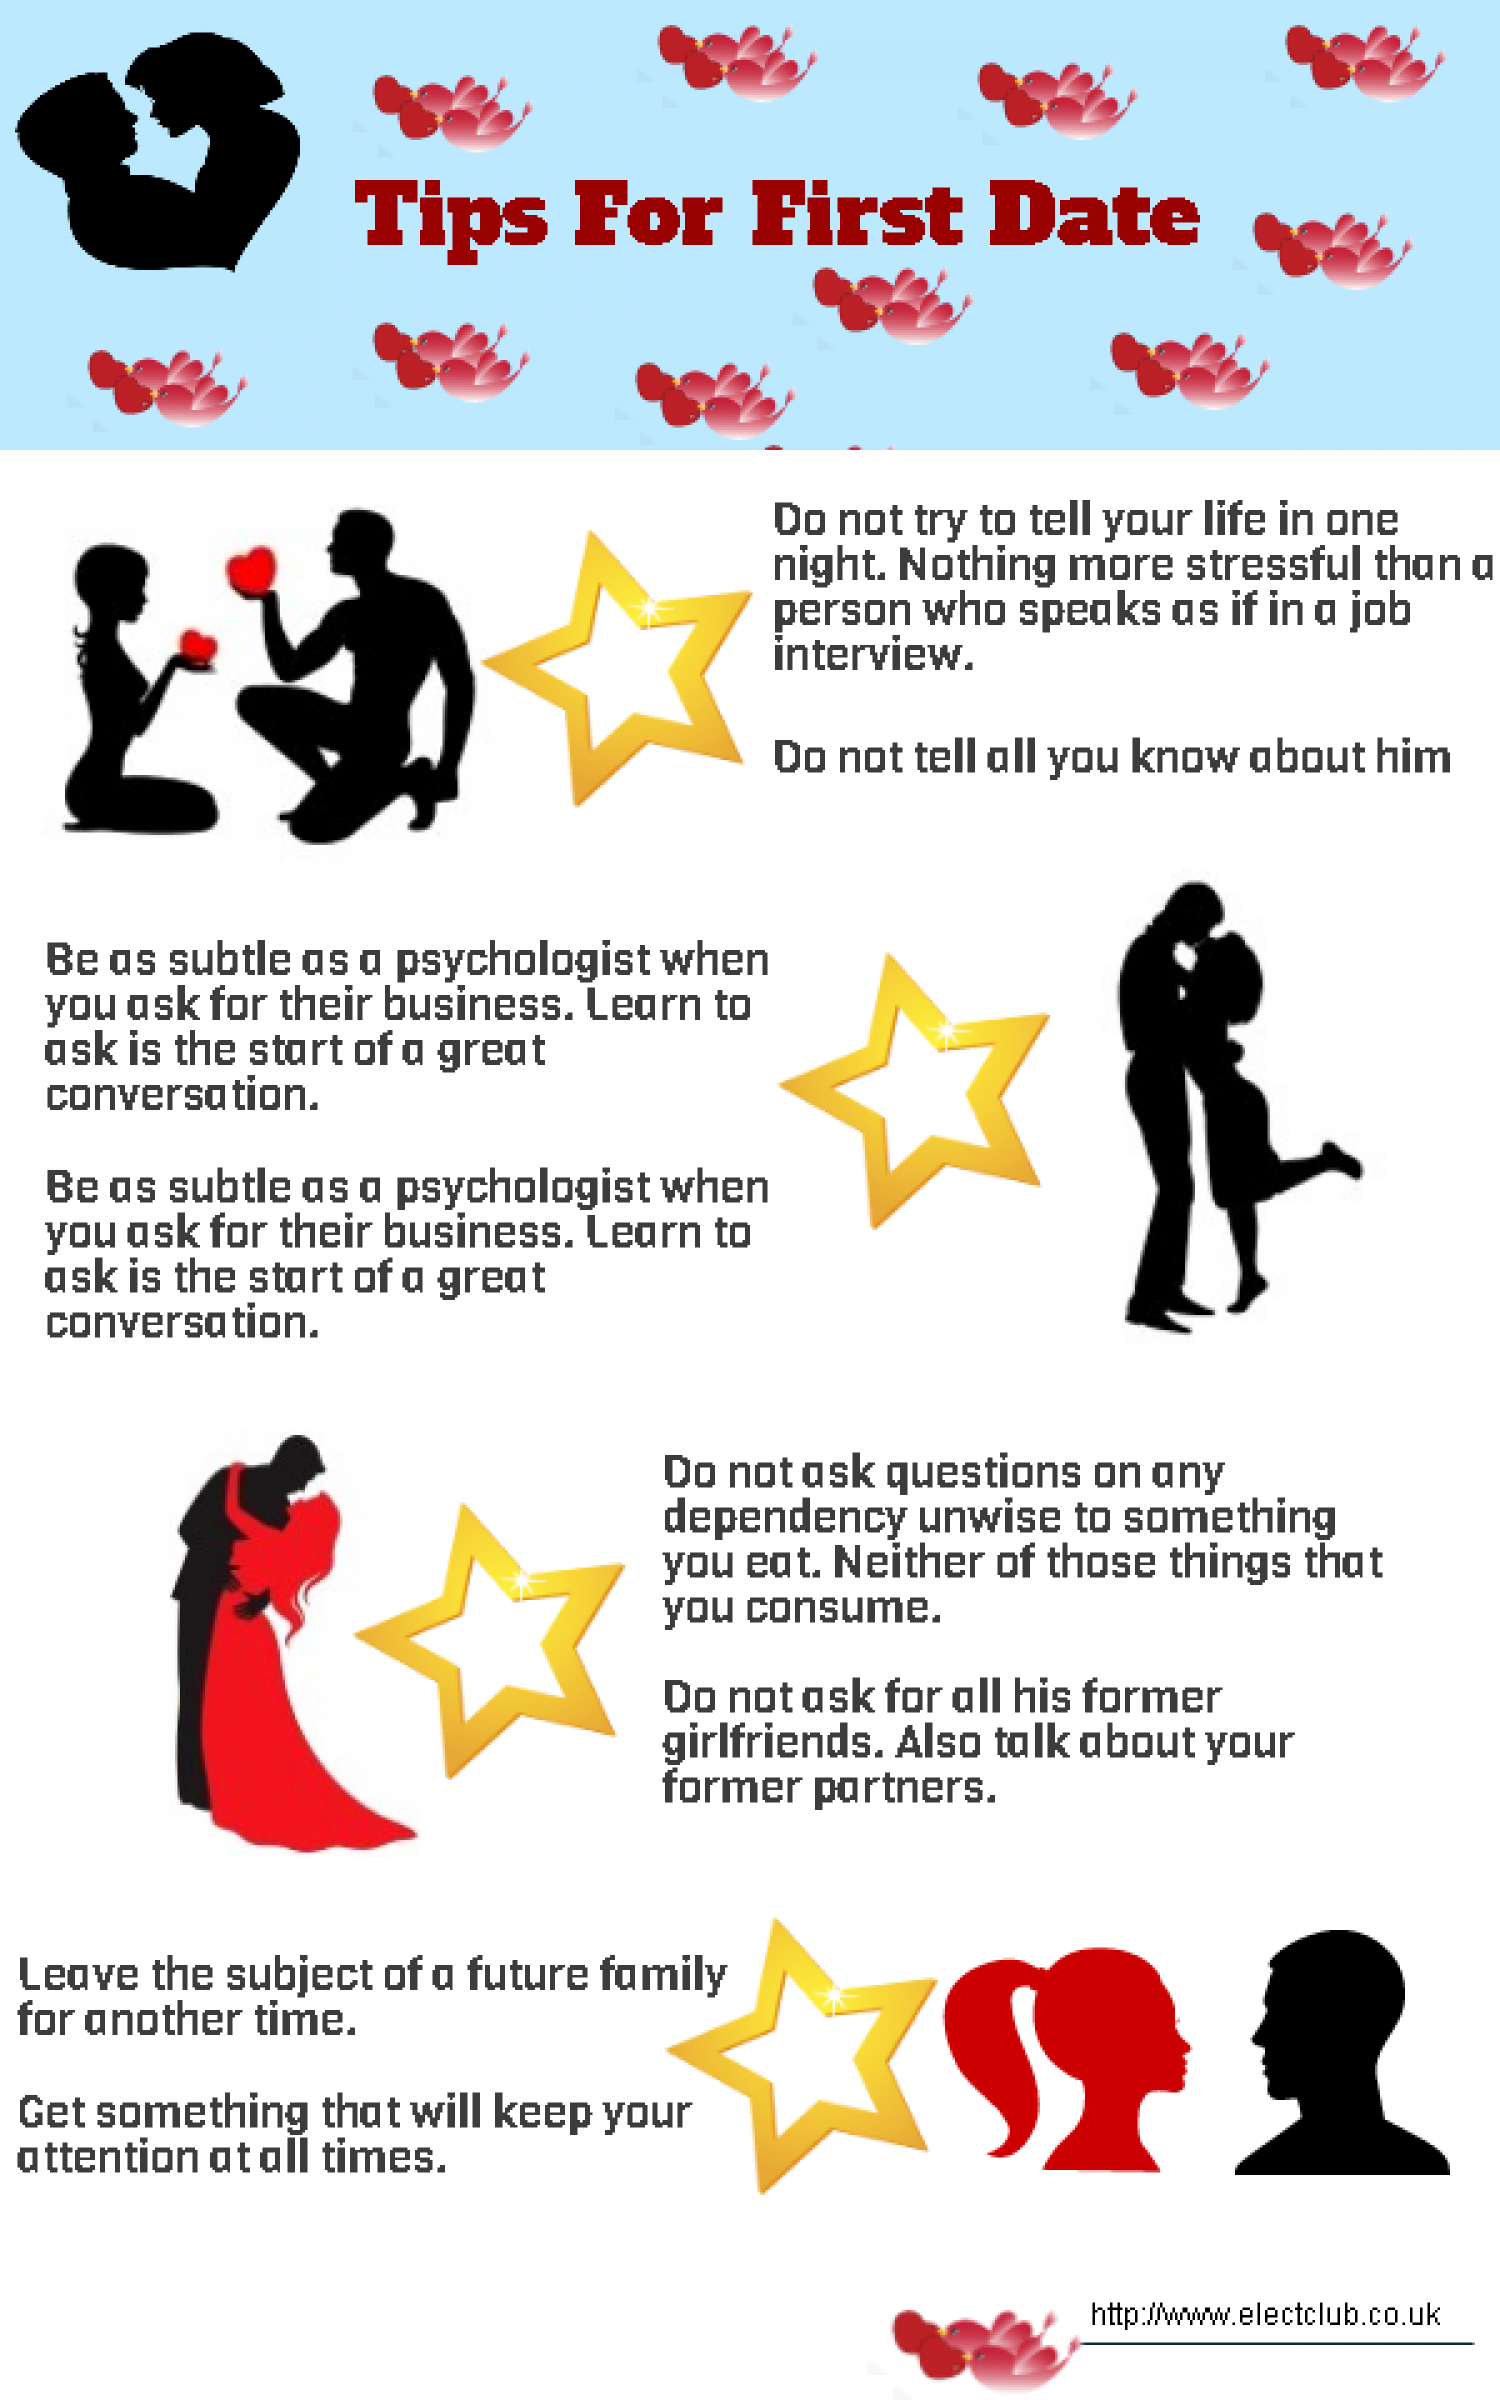 Tips for First Date Infographic